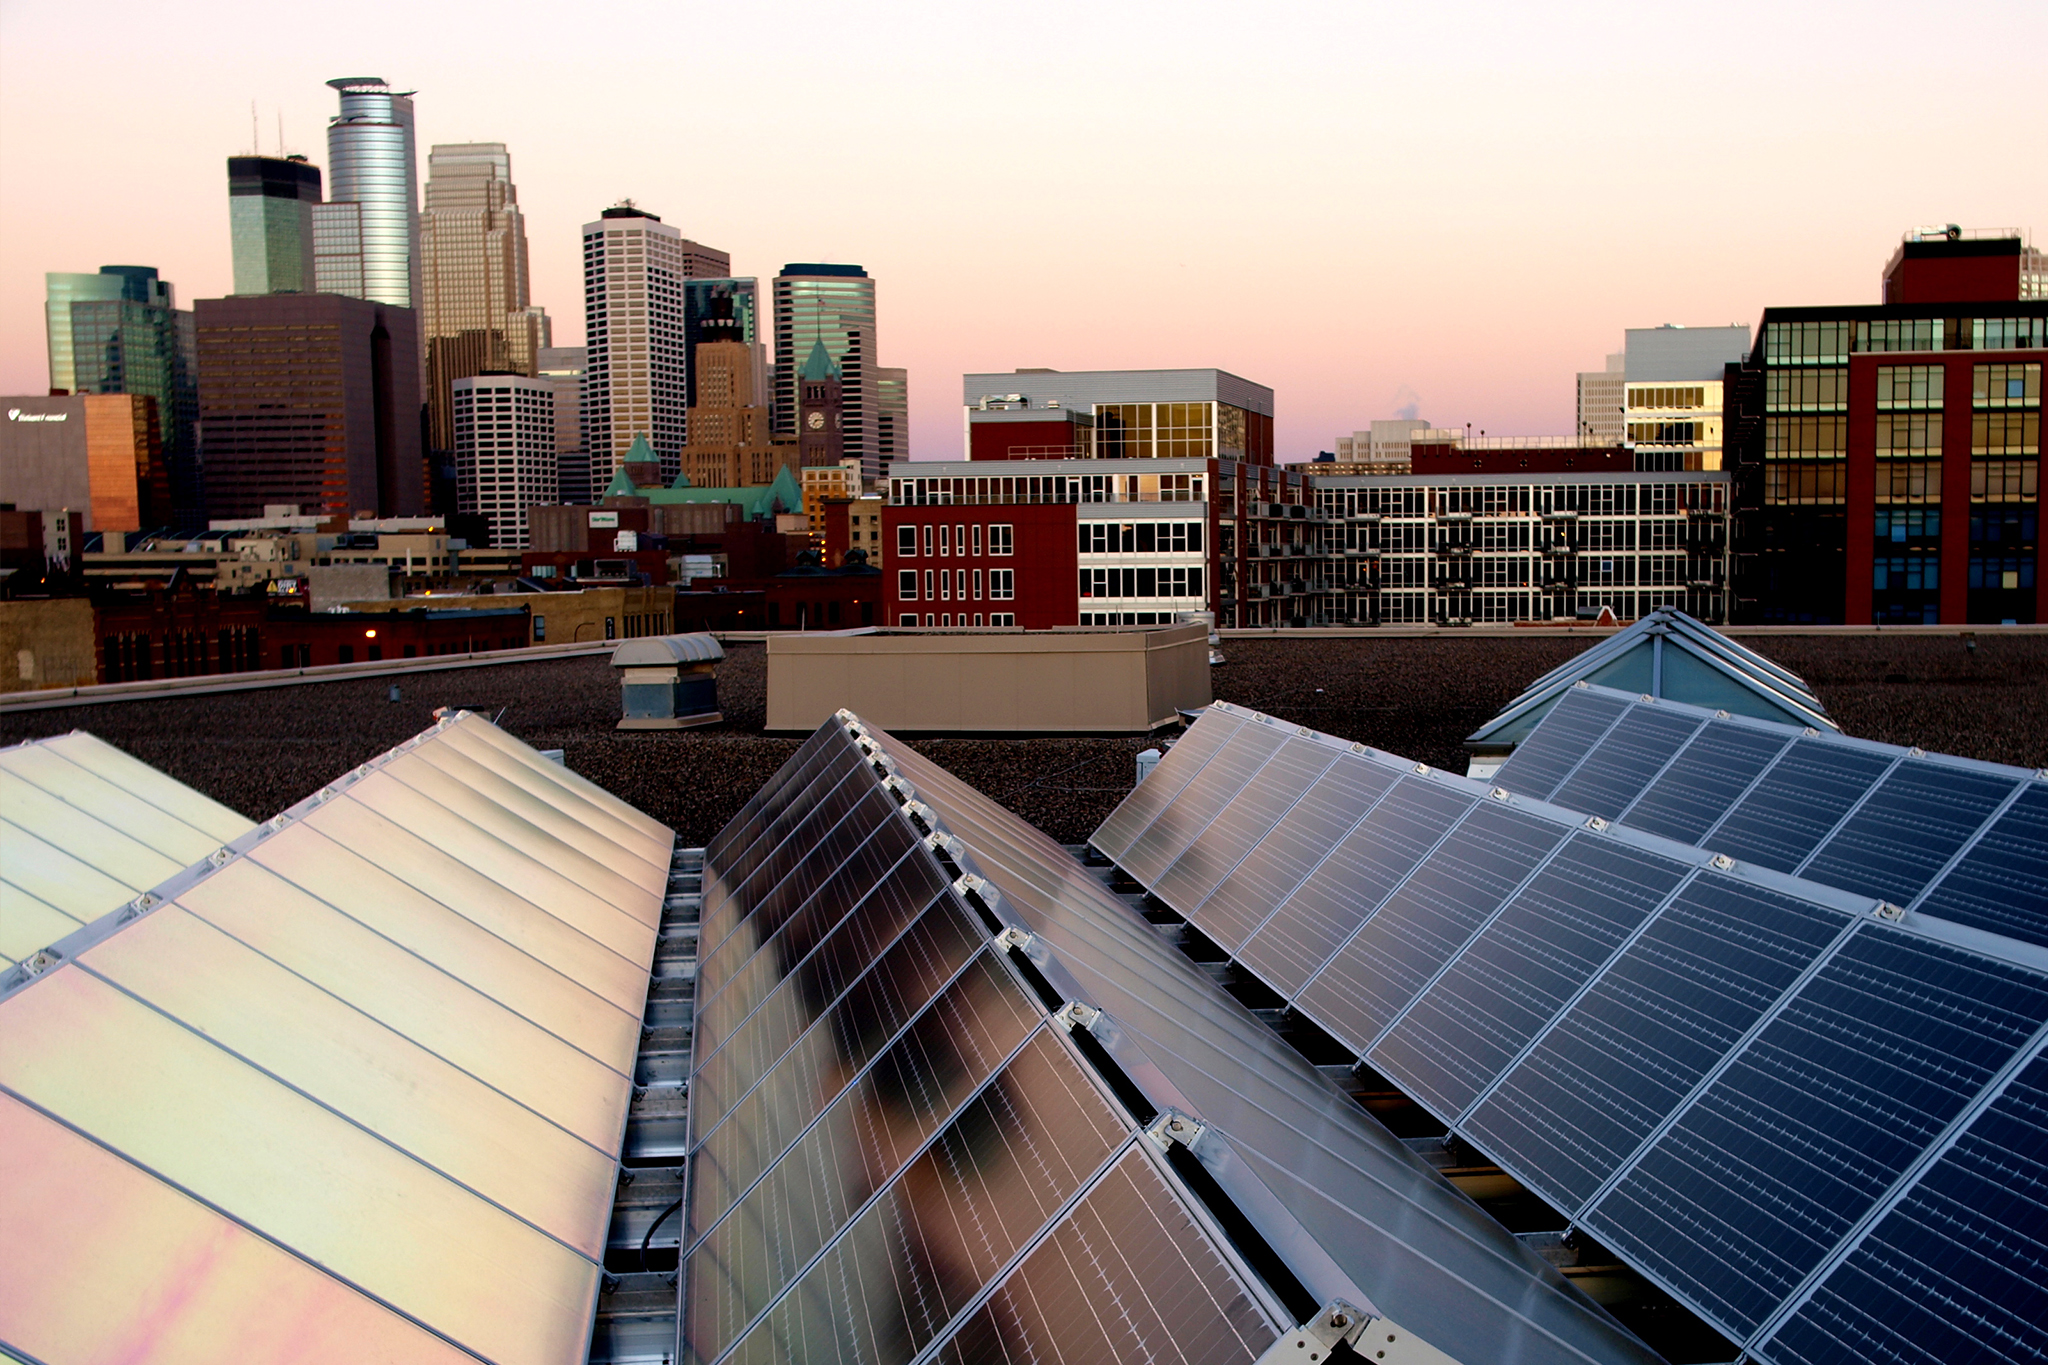 Skyline of Minneapolis with solar panels.